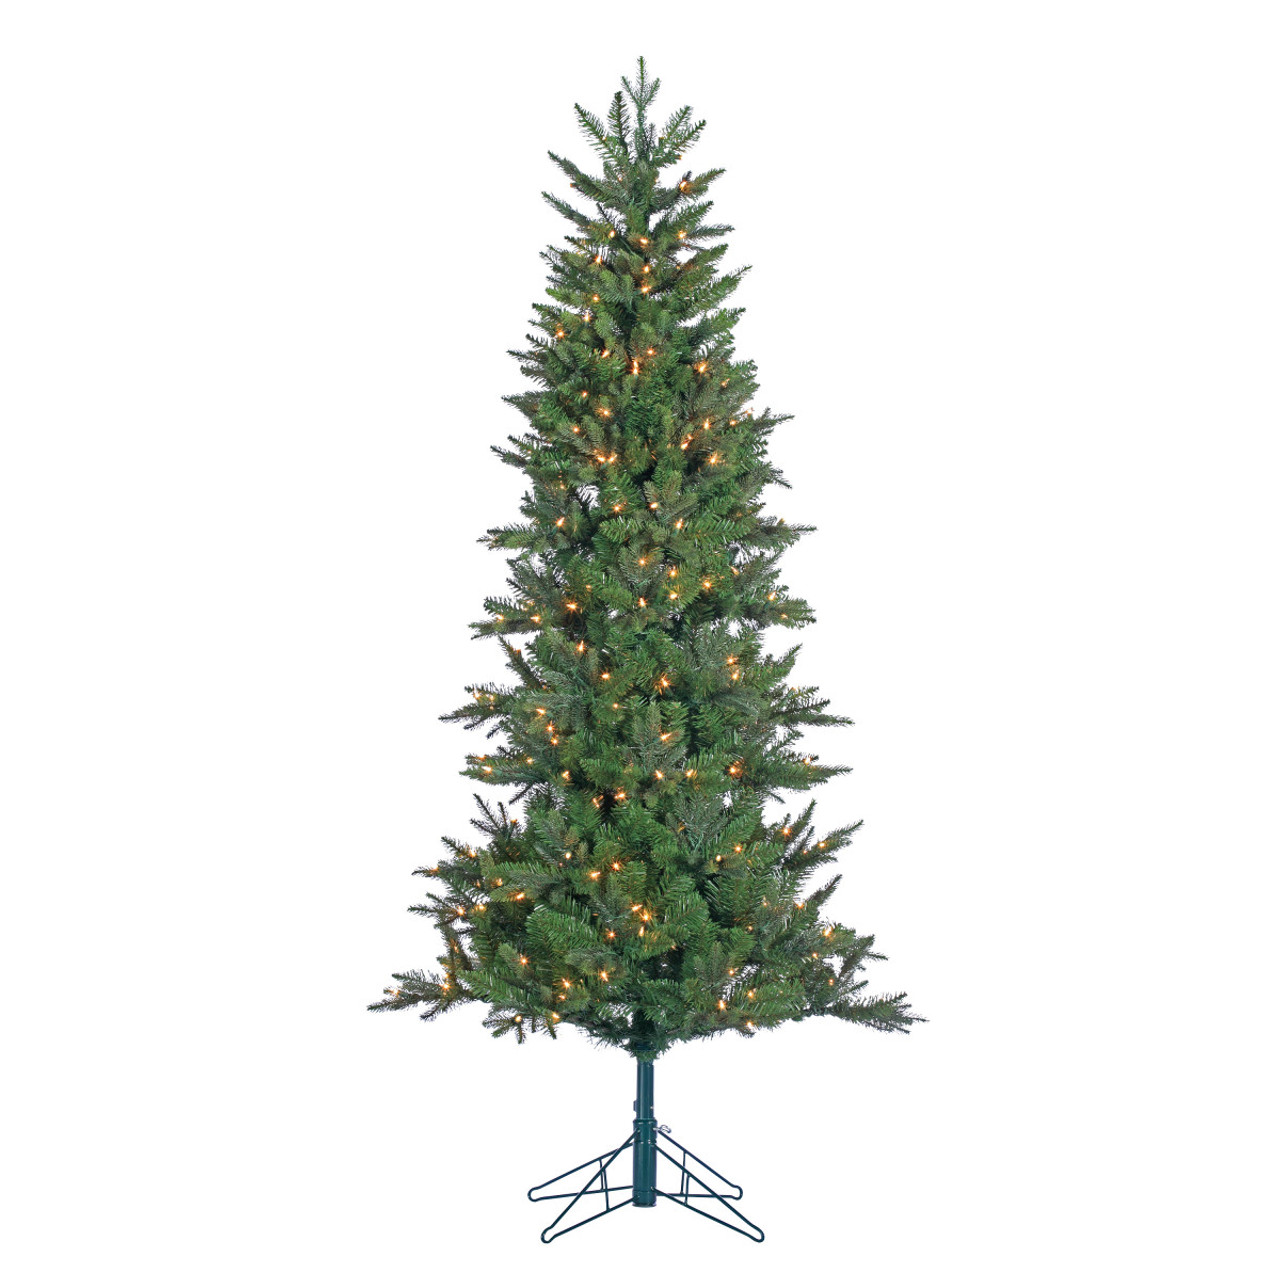 Pencil Christmas Tree.6 5 Prelit Pencil Artificial Christmas Tree With Power Pole